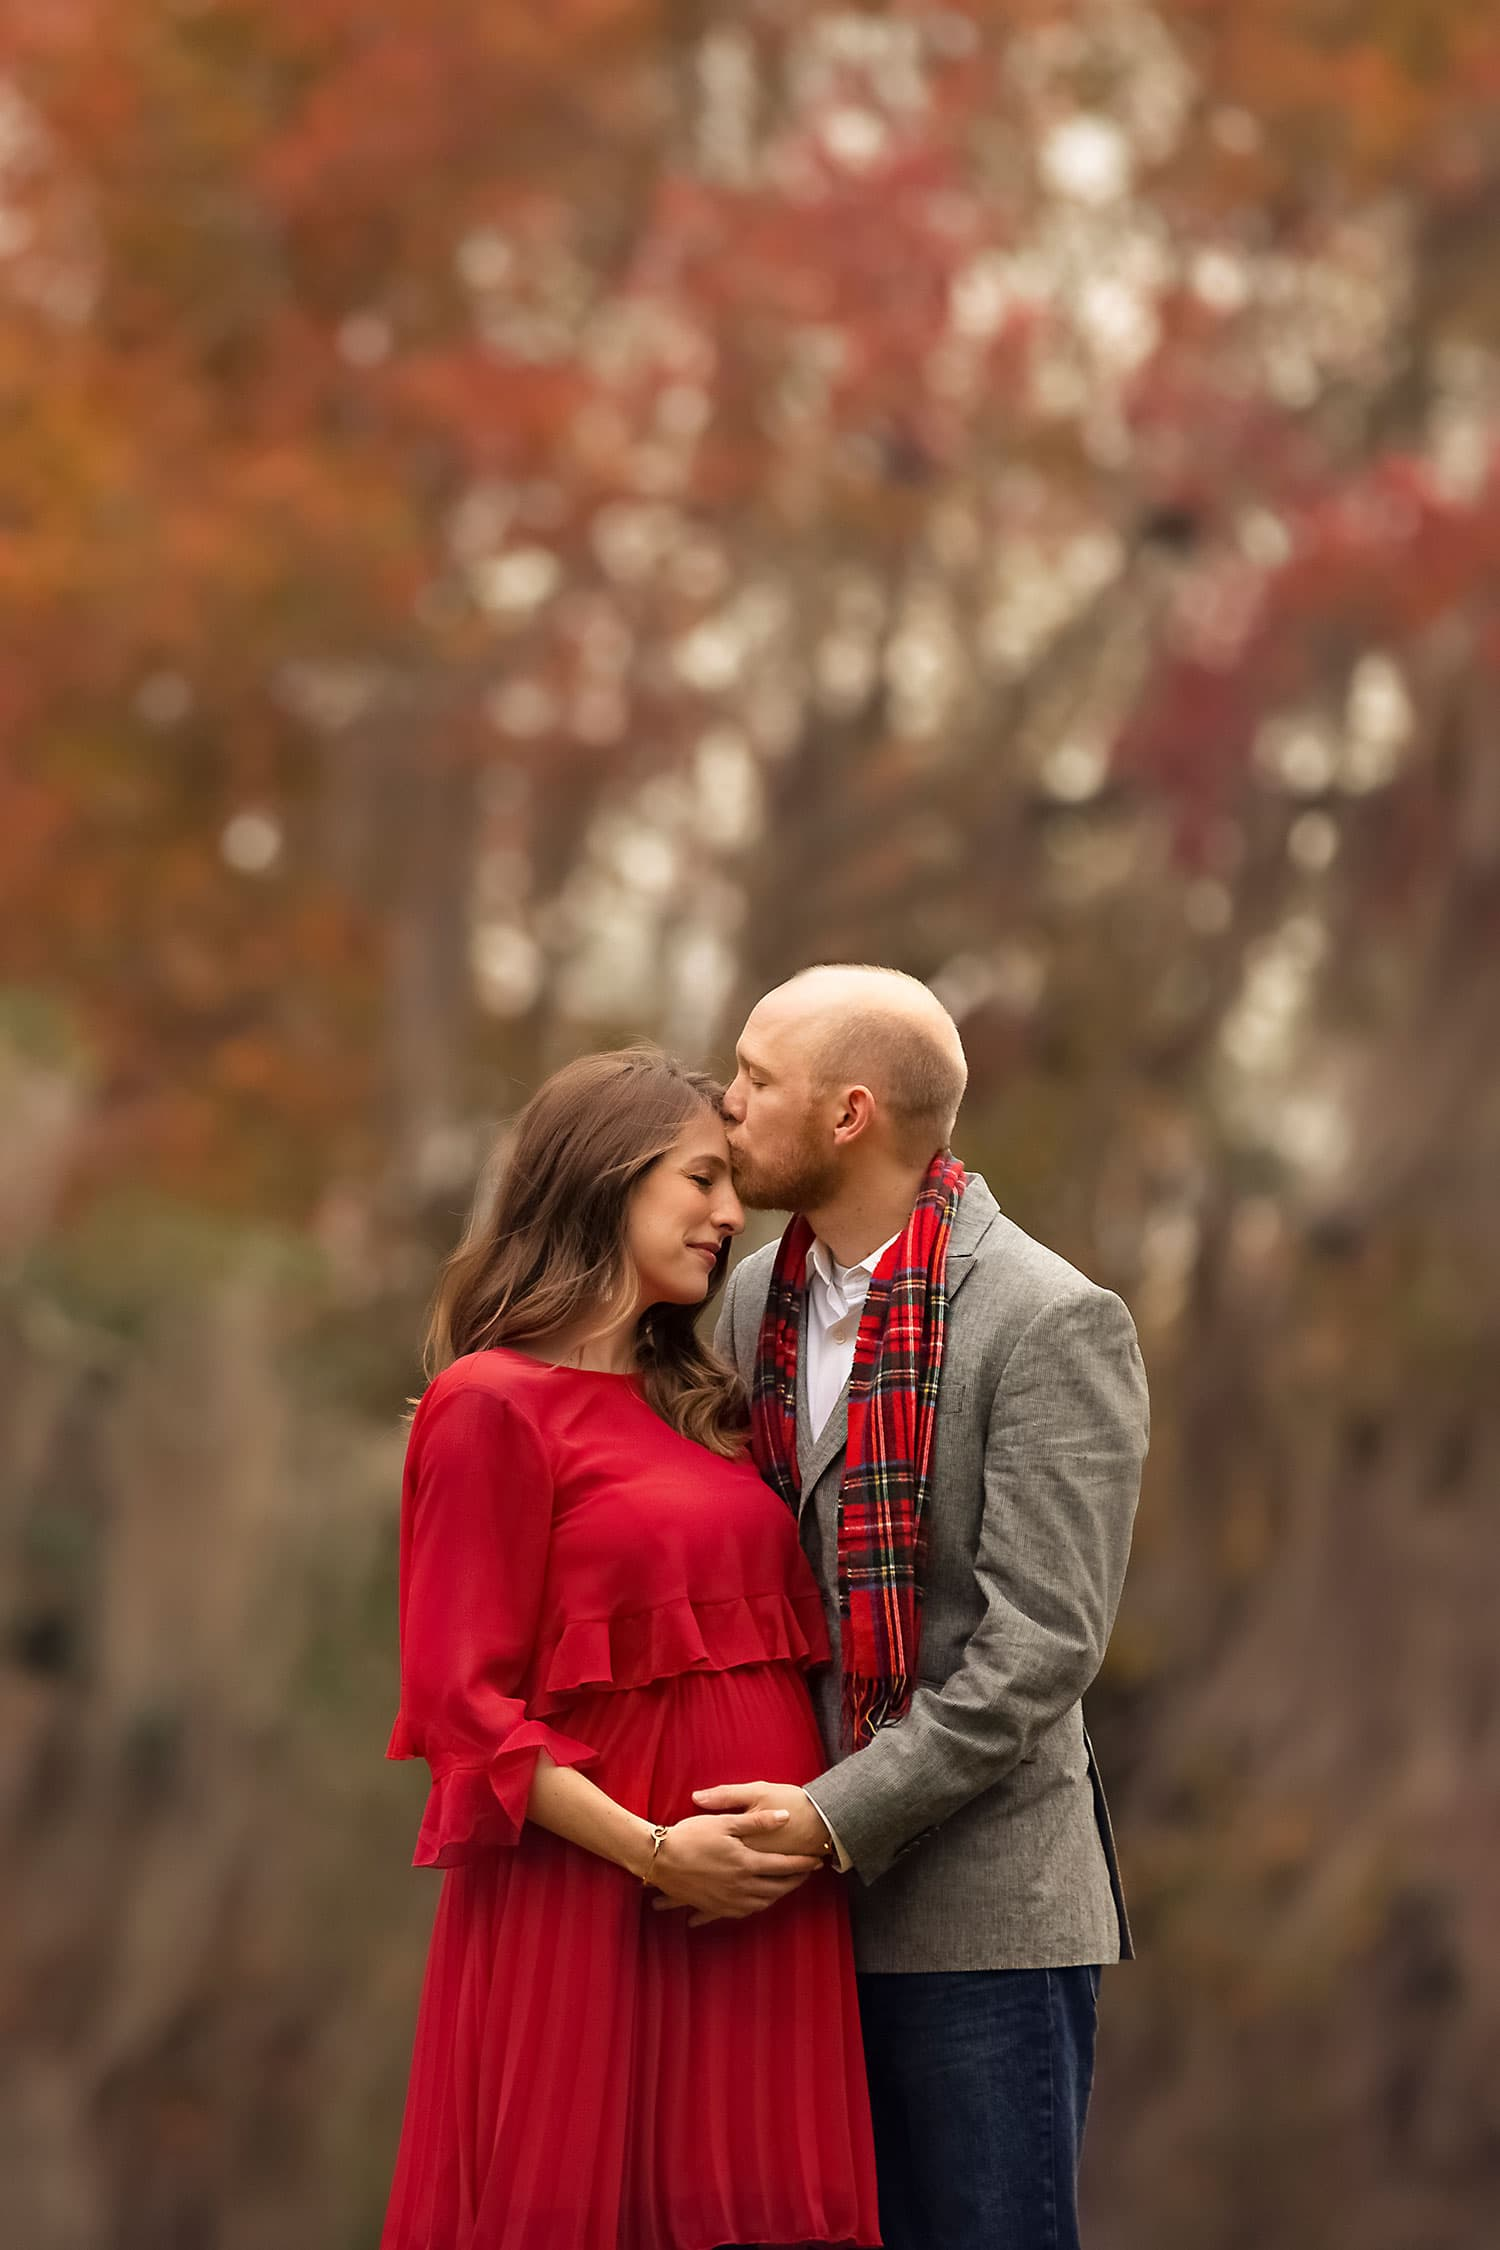 Husband and wife at Christmas maternity session by Annie Whitaker Photography